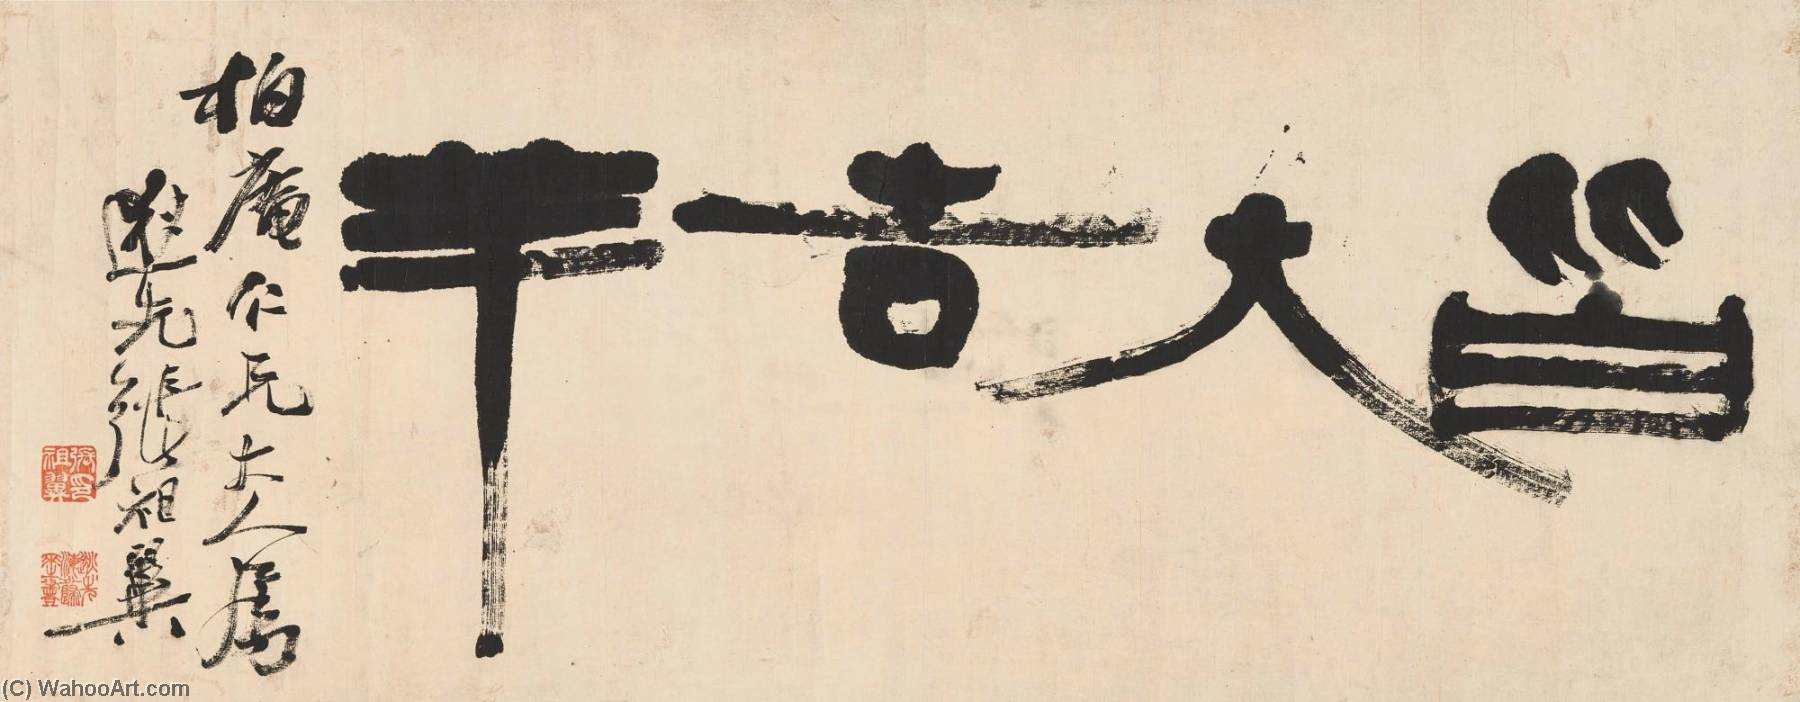 Wikioo.org - The Encyclopedia of Fine Arts - Painting, Artwork by Zhang Zuyi - Calligraphy in Lishu